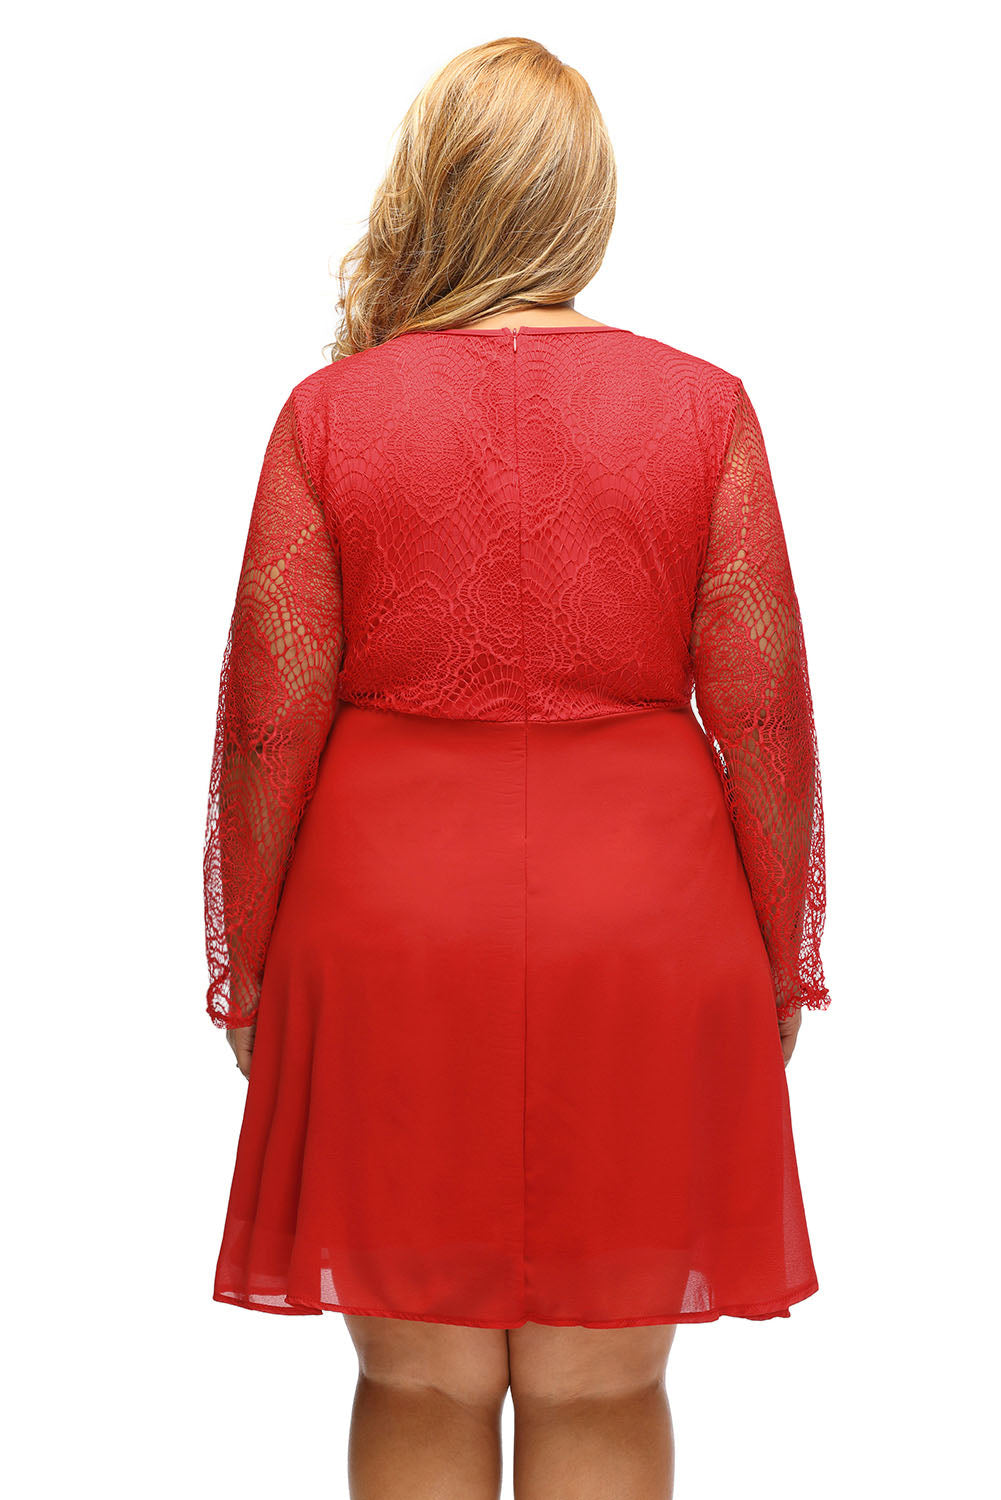 ee00e7a1b0 Sexy Red Boohoo Plus Size Lace Top Skater Dress – SEXY AFFORDABLE ...